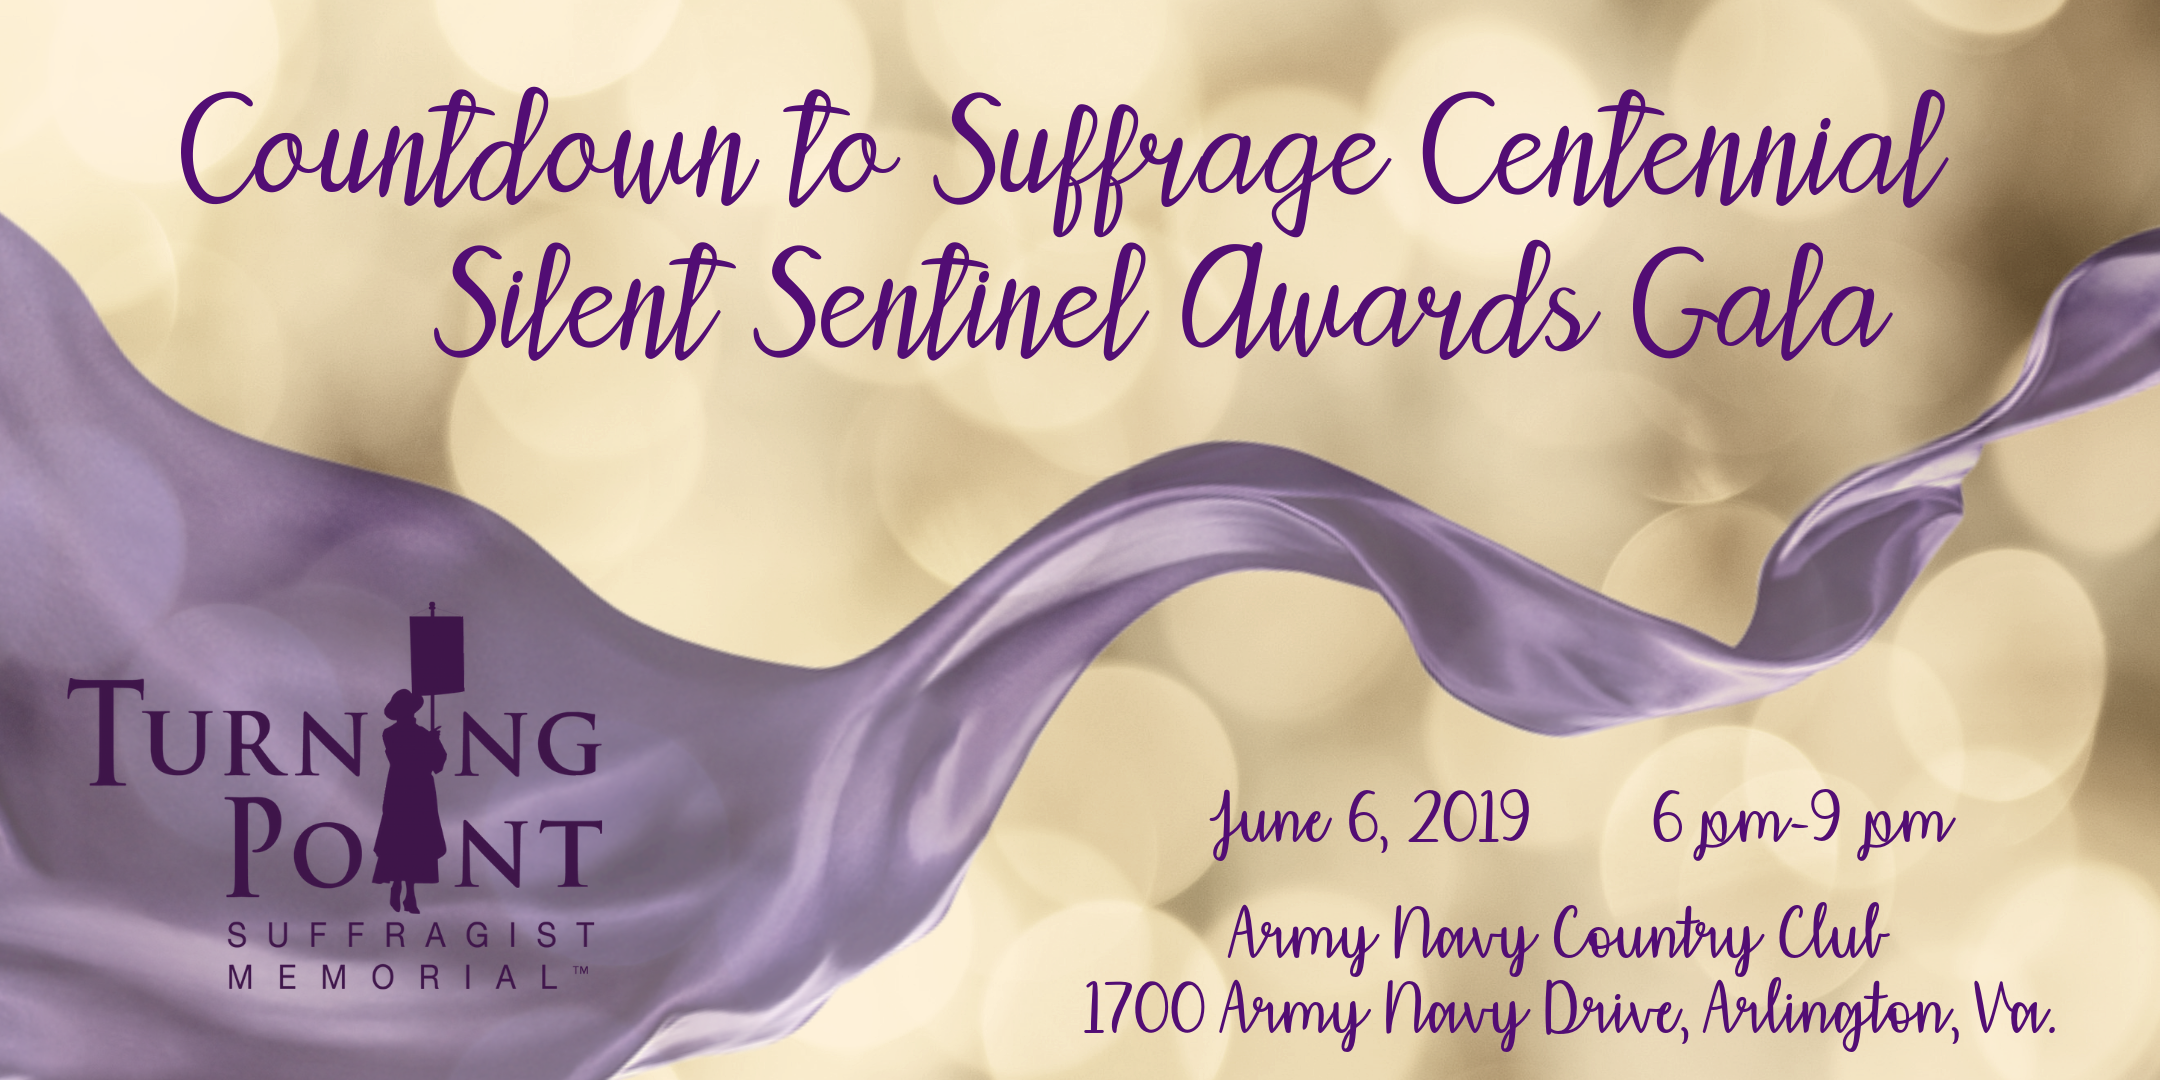 Countdown-to-Suffrage-Centennial-Silent-Sentinel-Awards